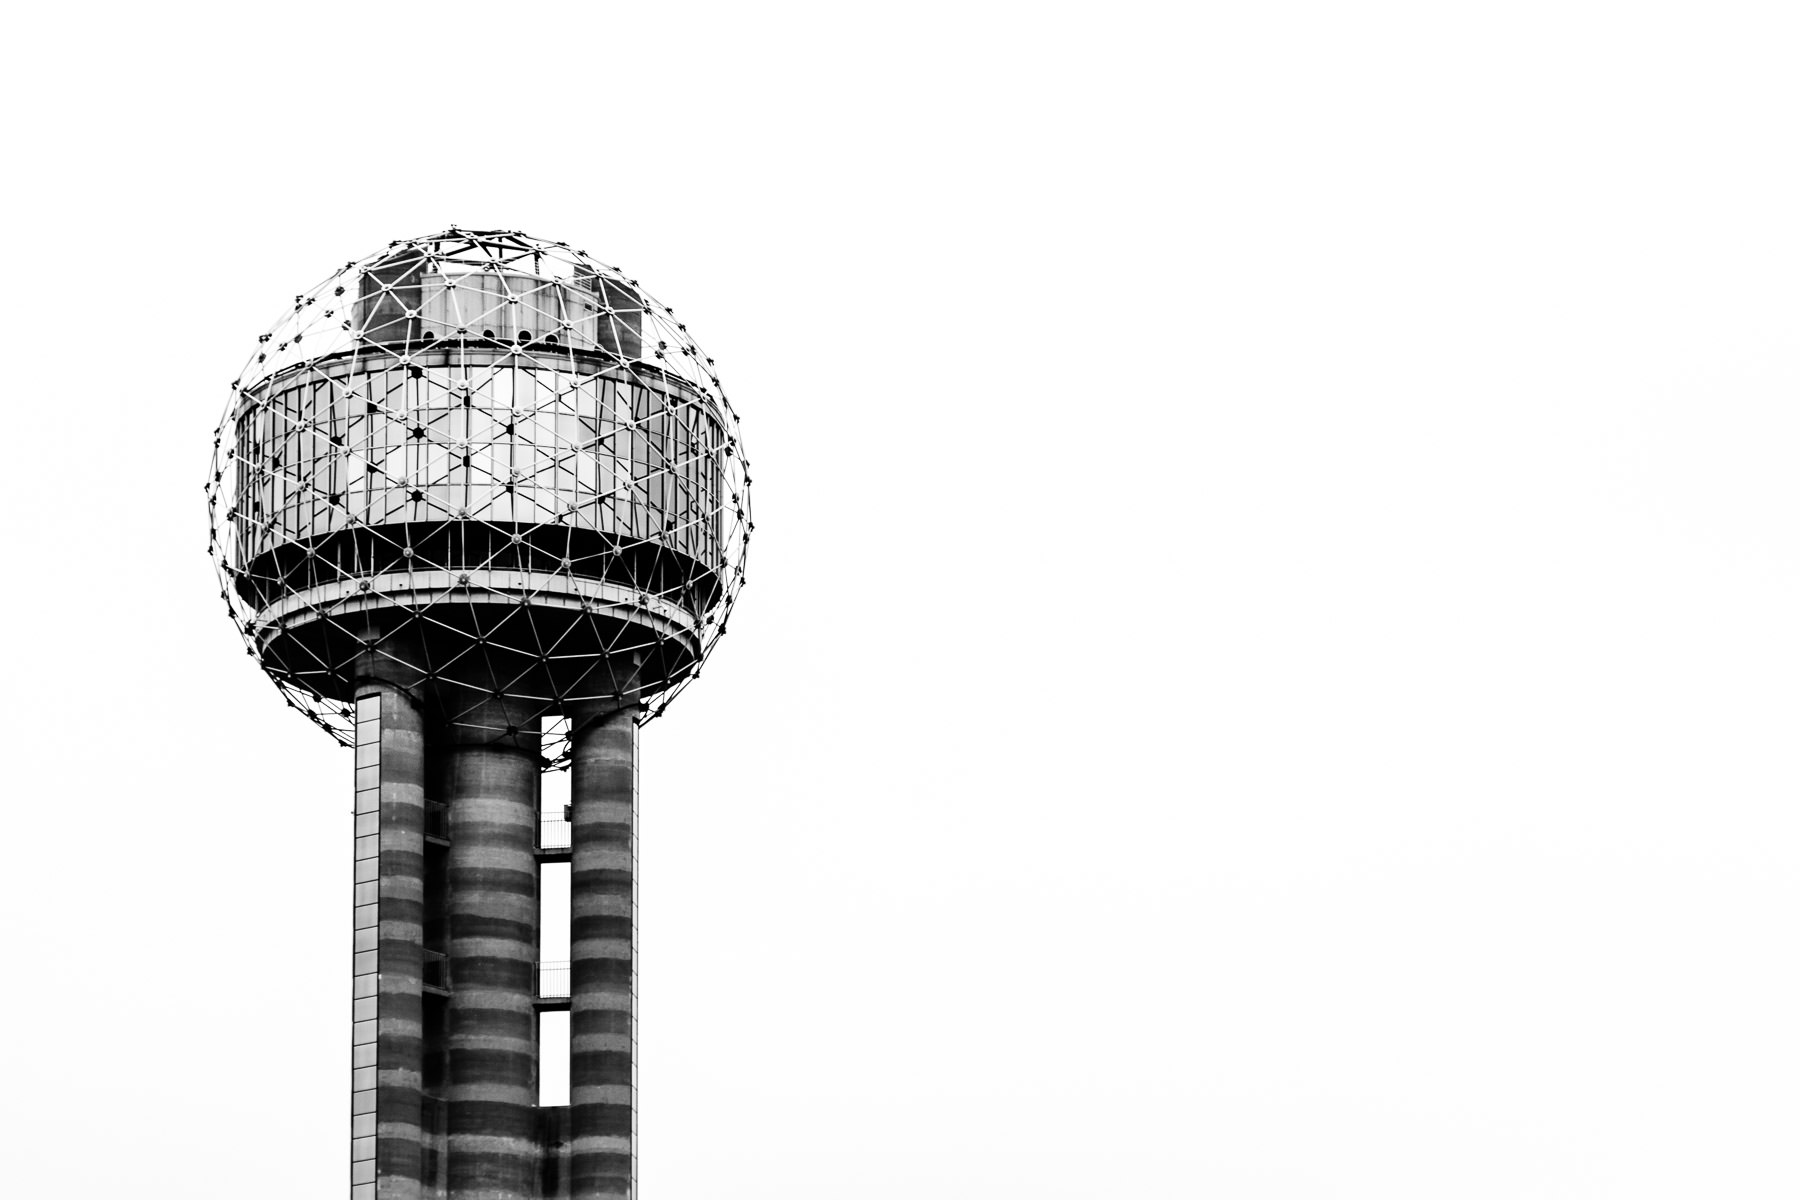 Dallas' Reunion Tower rises into the overcast sky over North Texas.